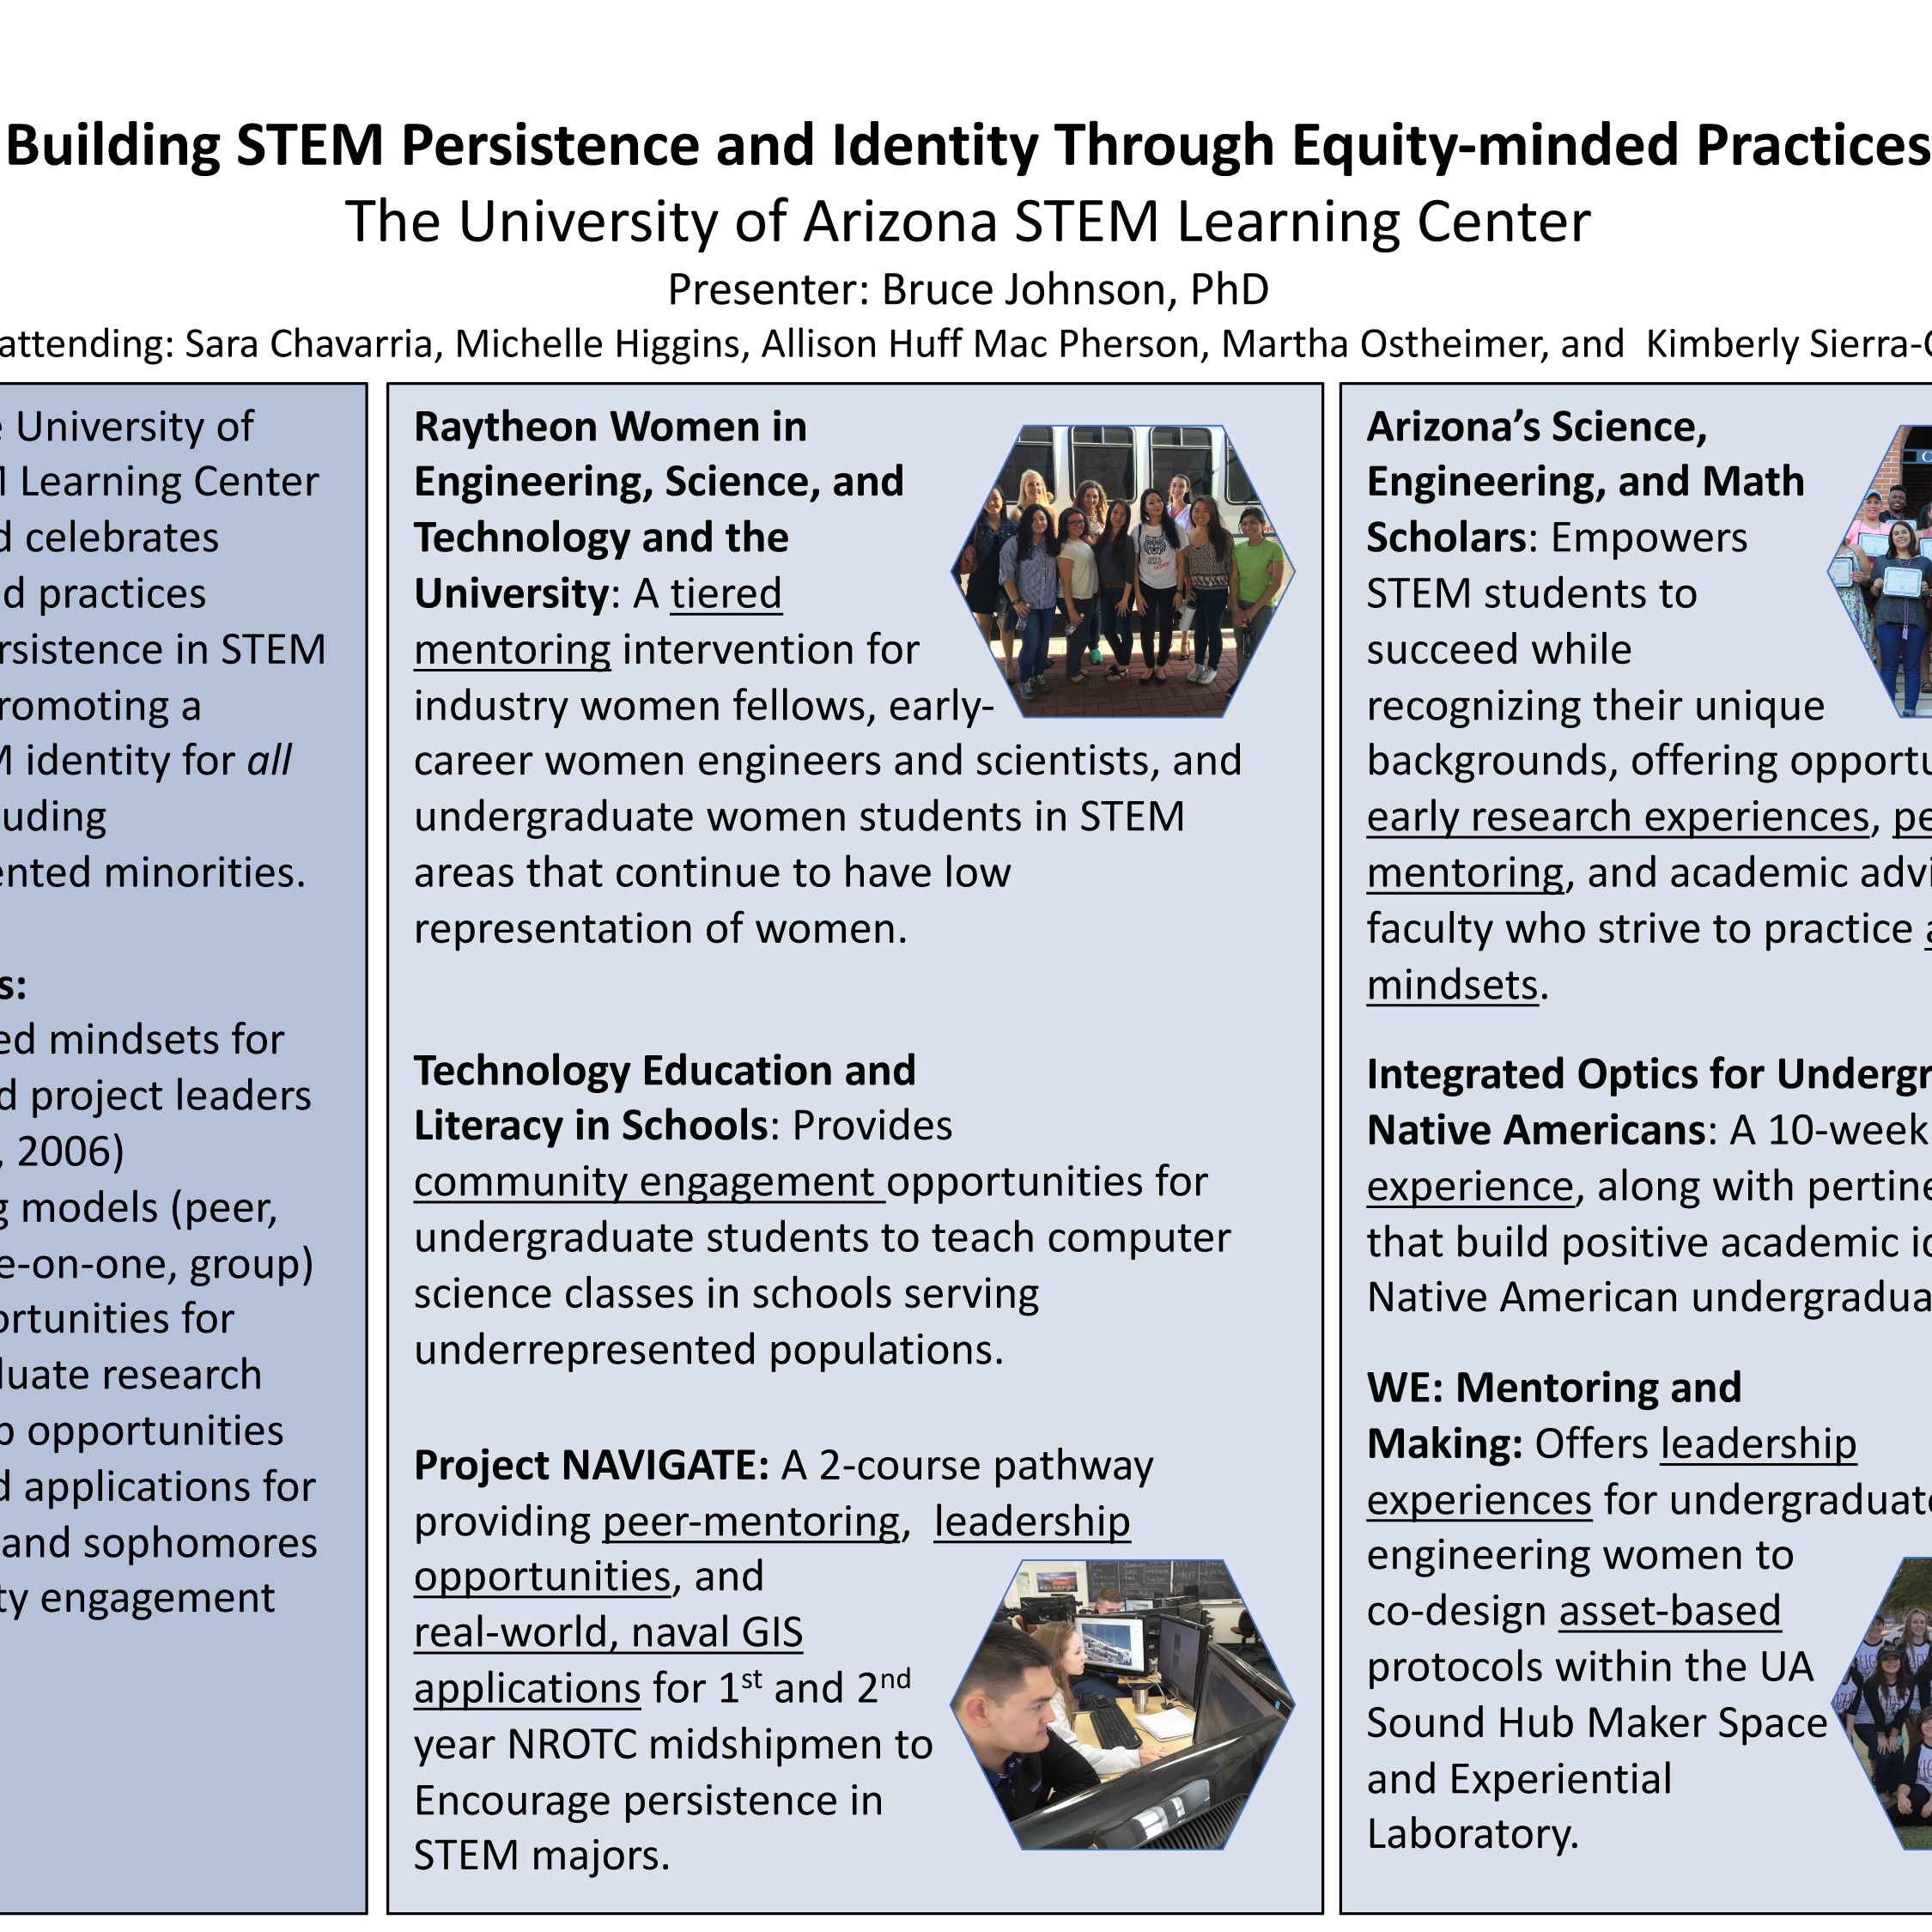 Building STEM Persistence and Identity Through Equity-minded Practices